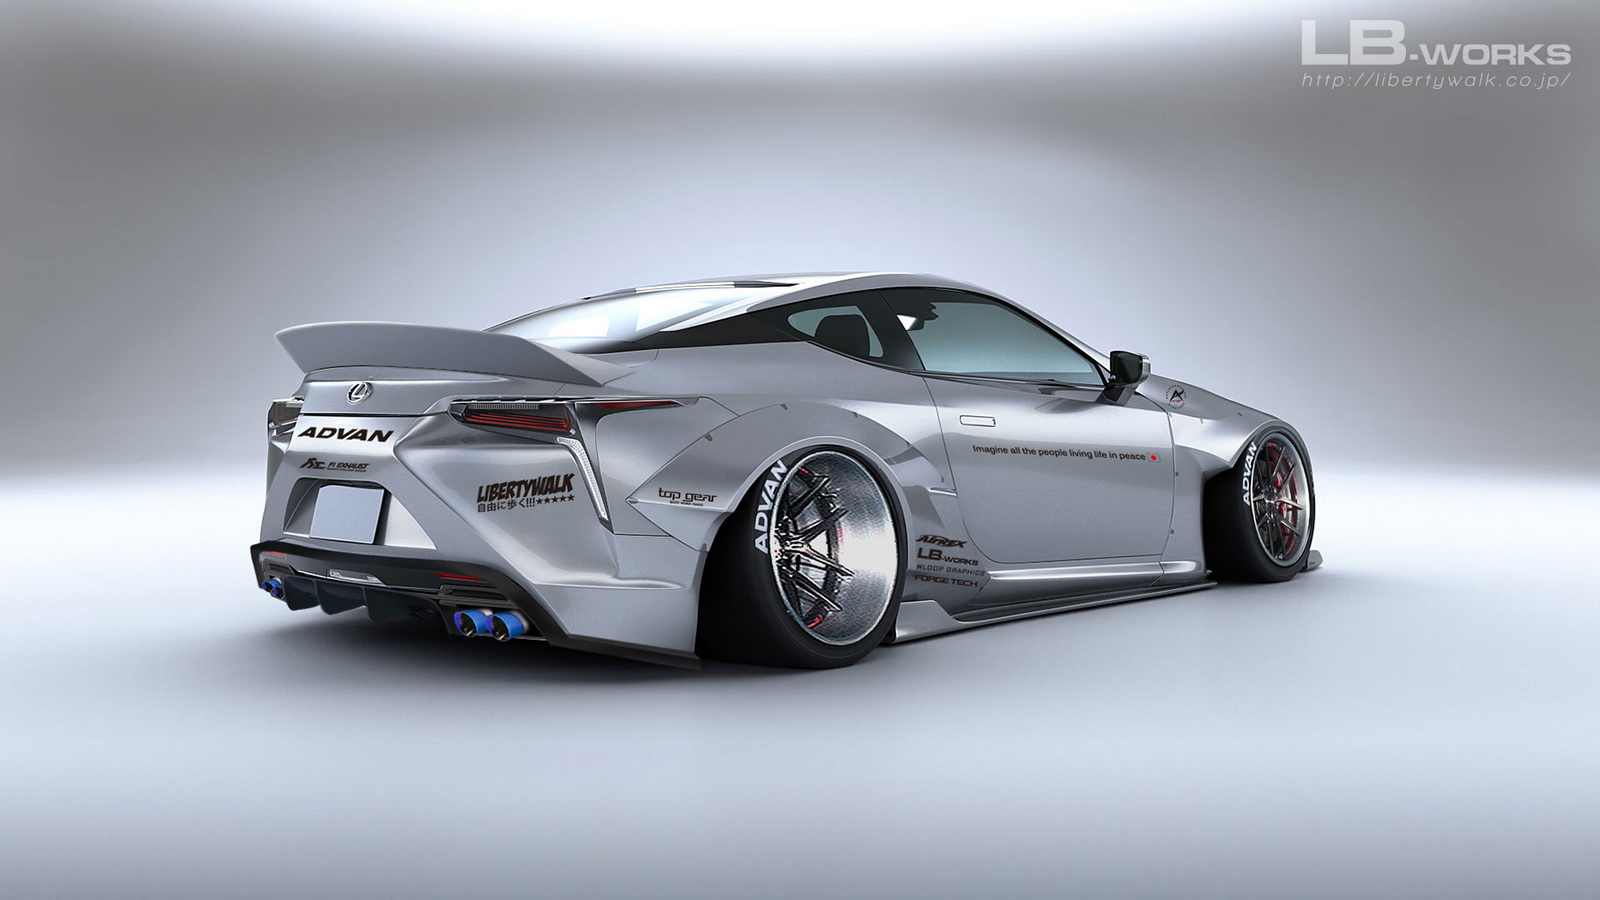 Lexus_LC500_Liberty_Walk_0001